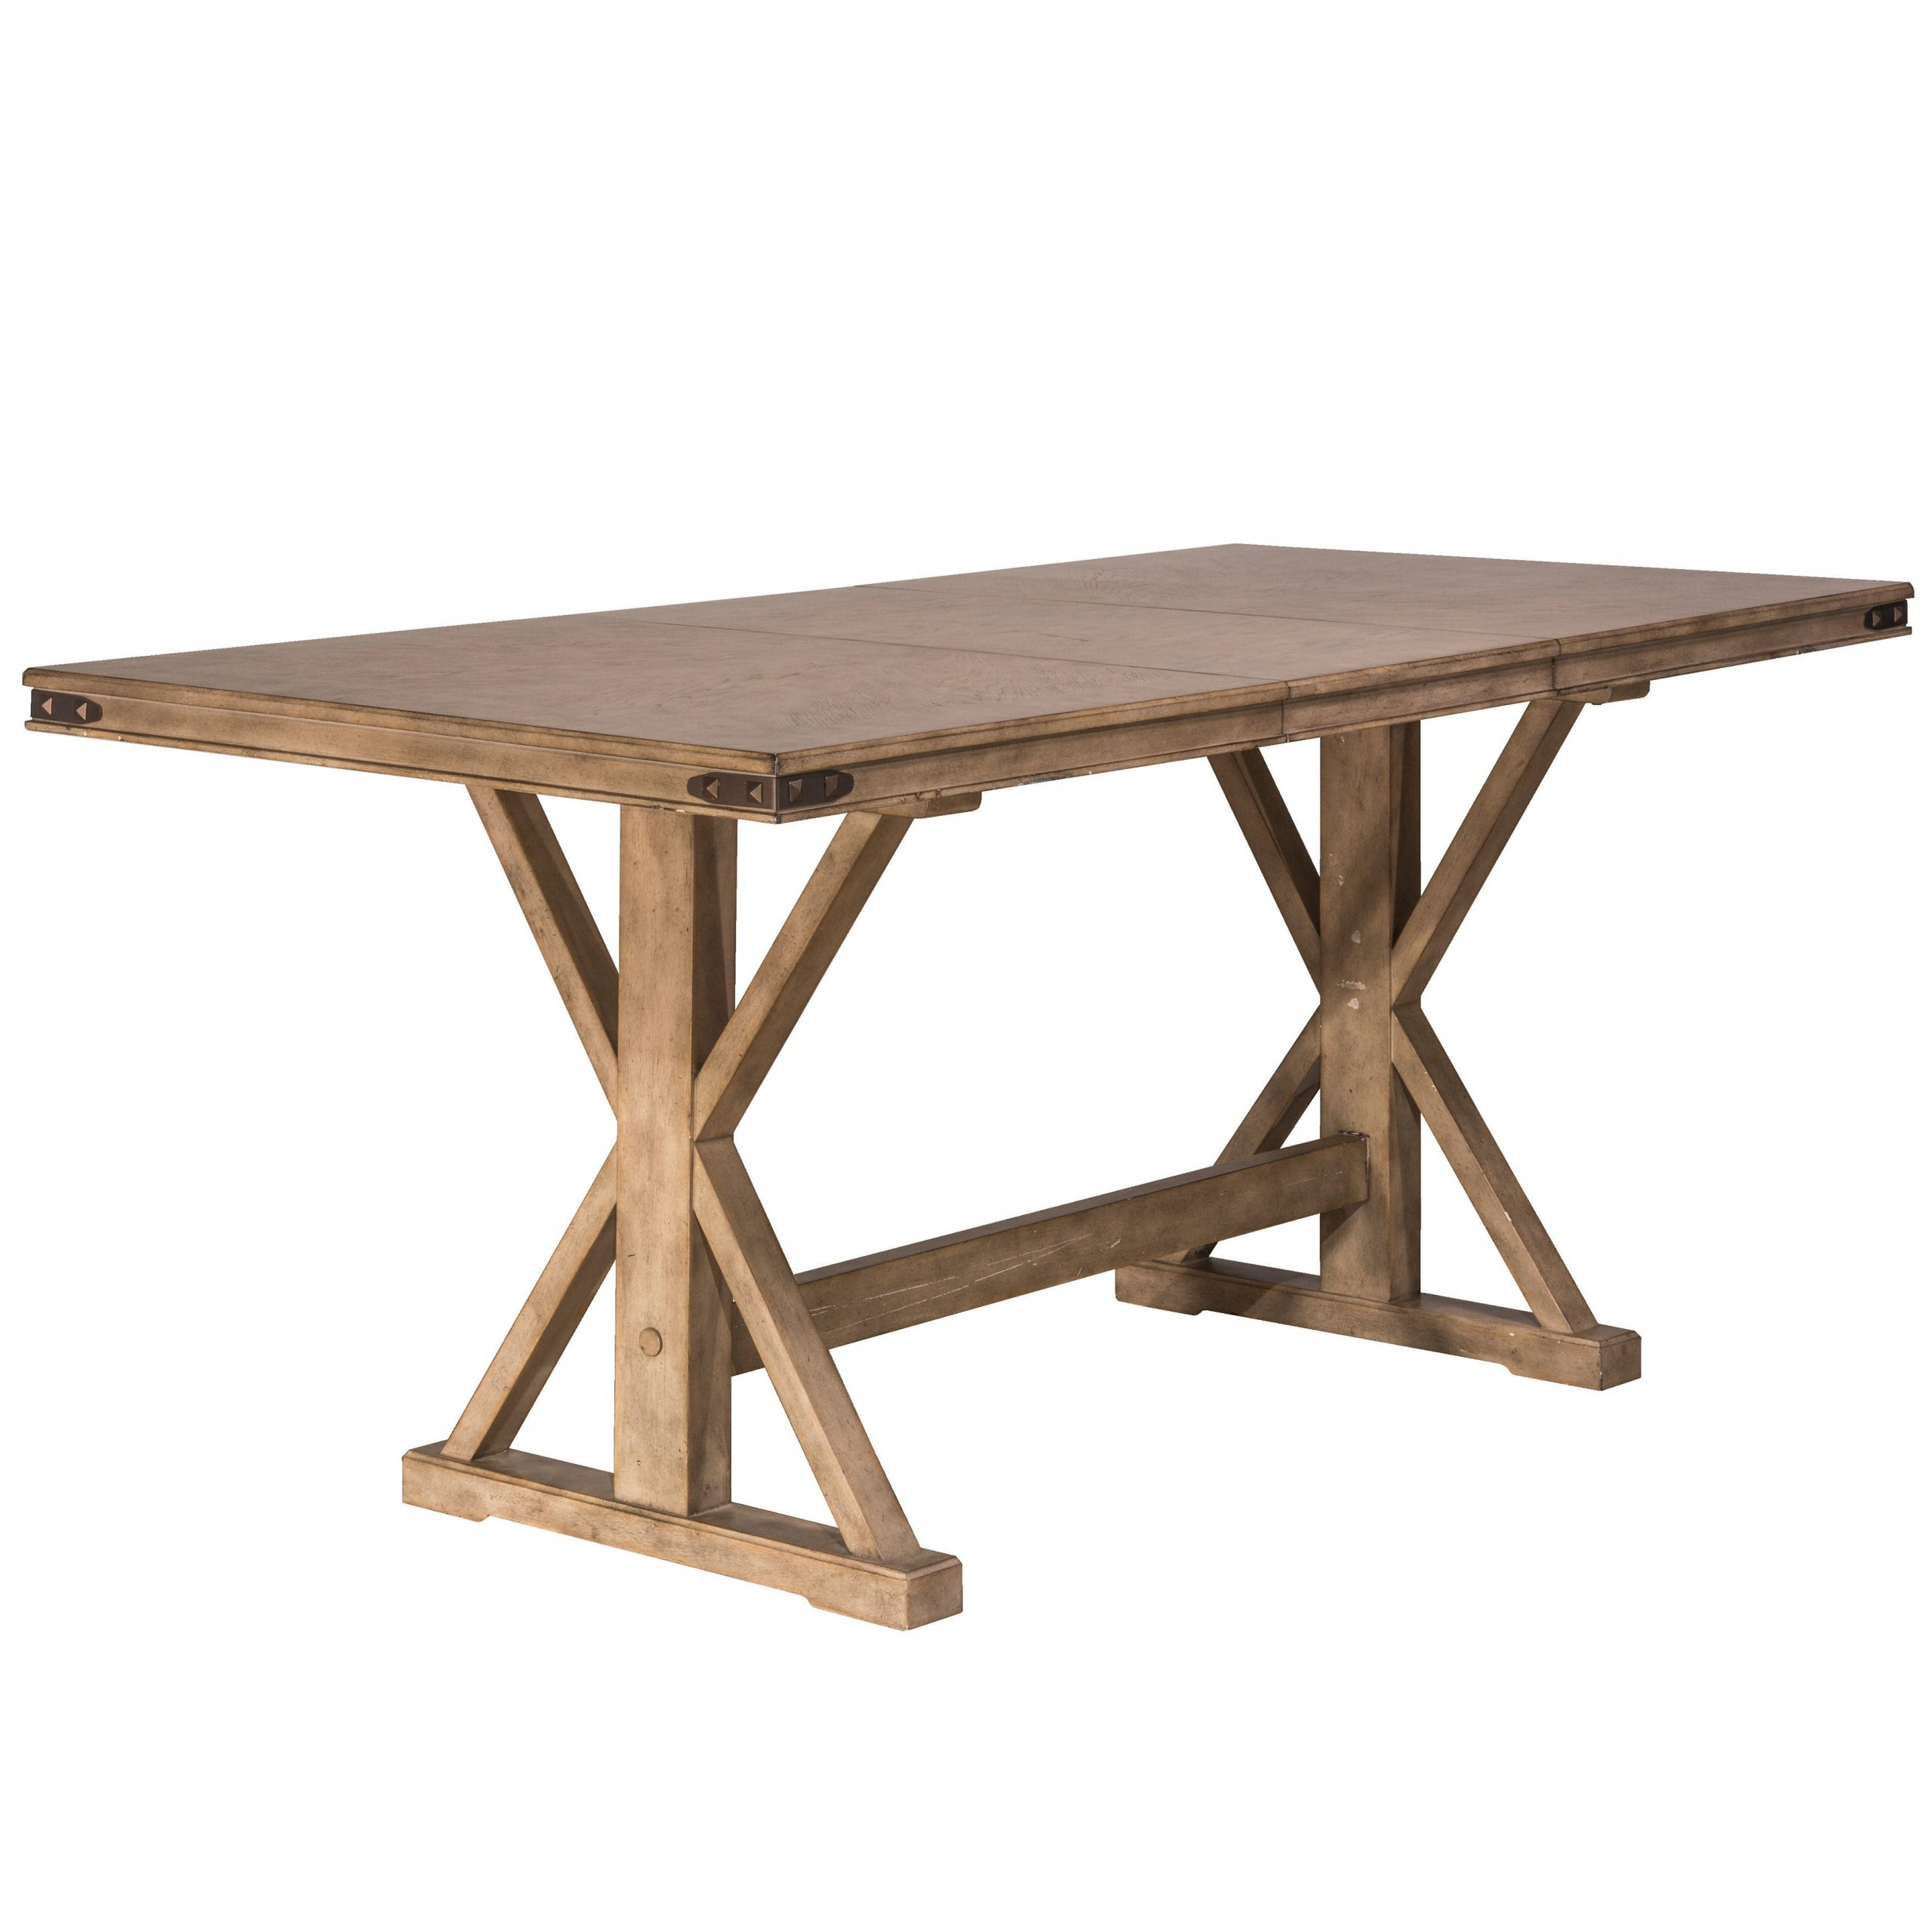 Hillsdale Furniture Leclair Vintage Grey Wood Counter Height Dining Table Regarding Most Recently Released Benchwright Counter Height Tables (View 12 of 25)